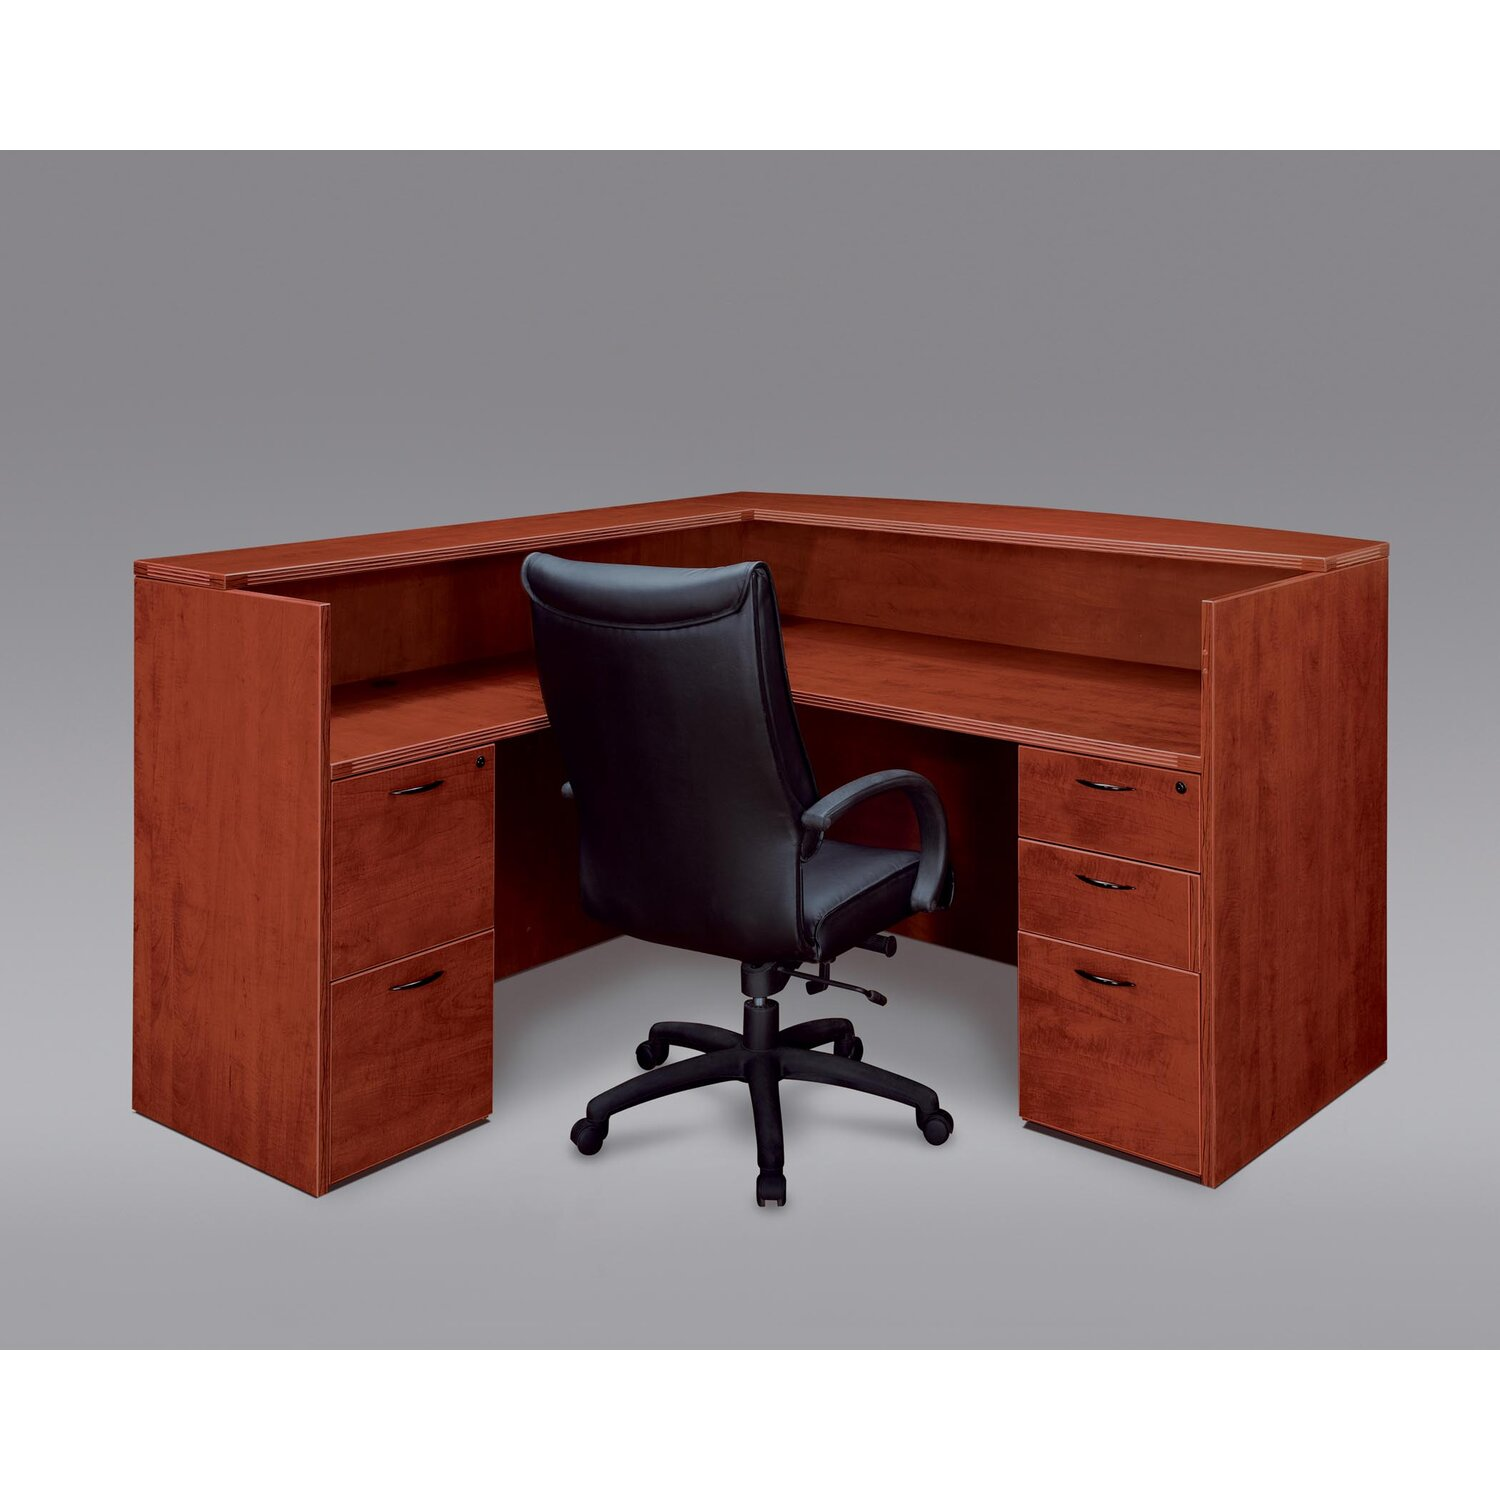 l Shaped Reception Desk L-shape Reception Desk